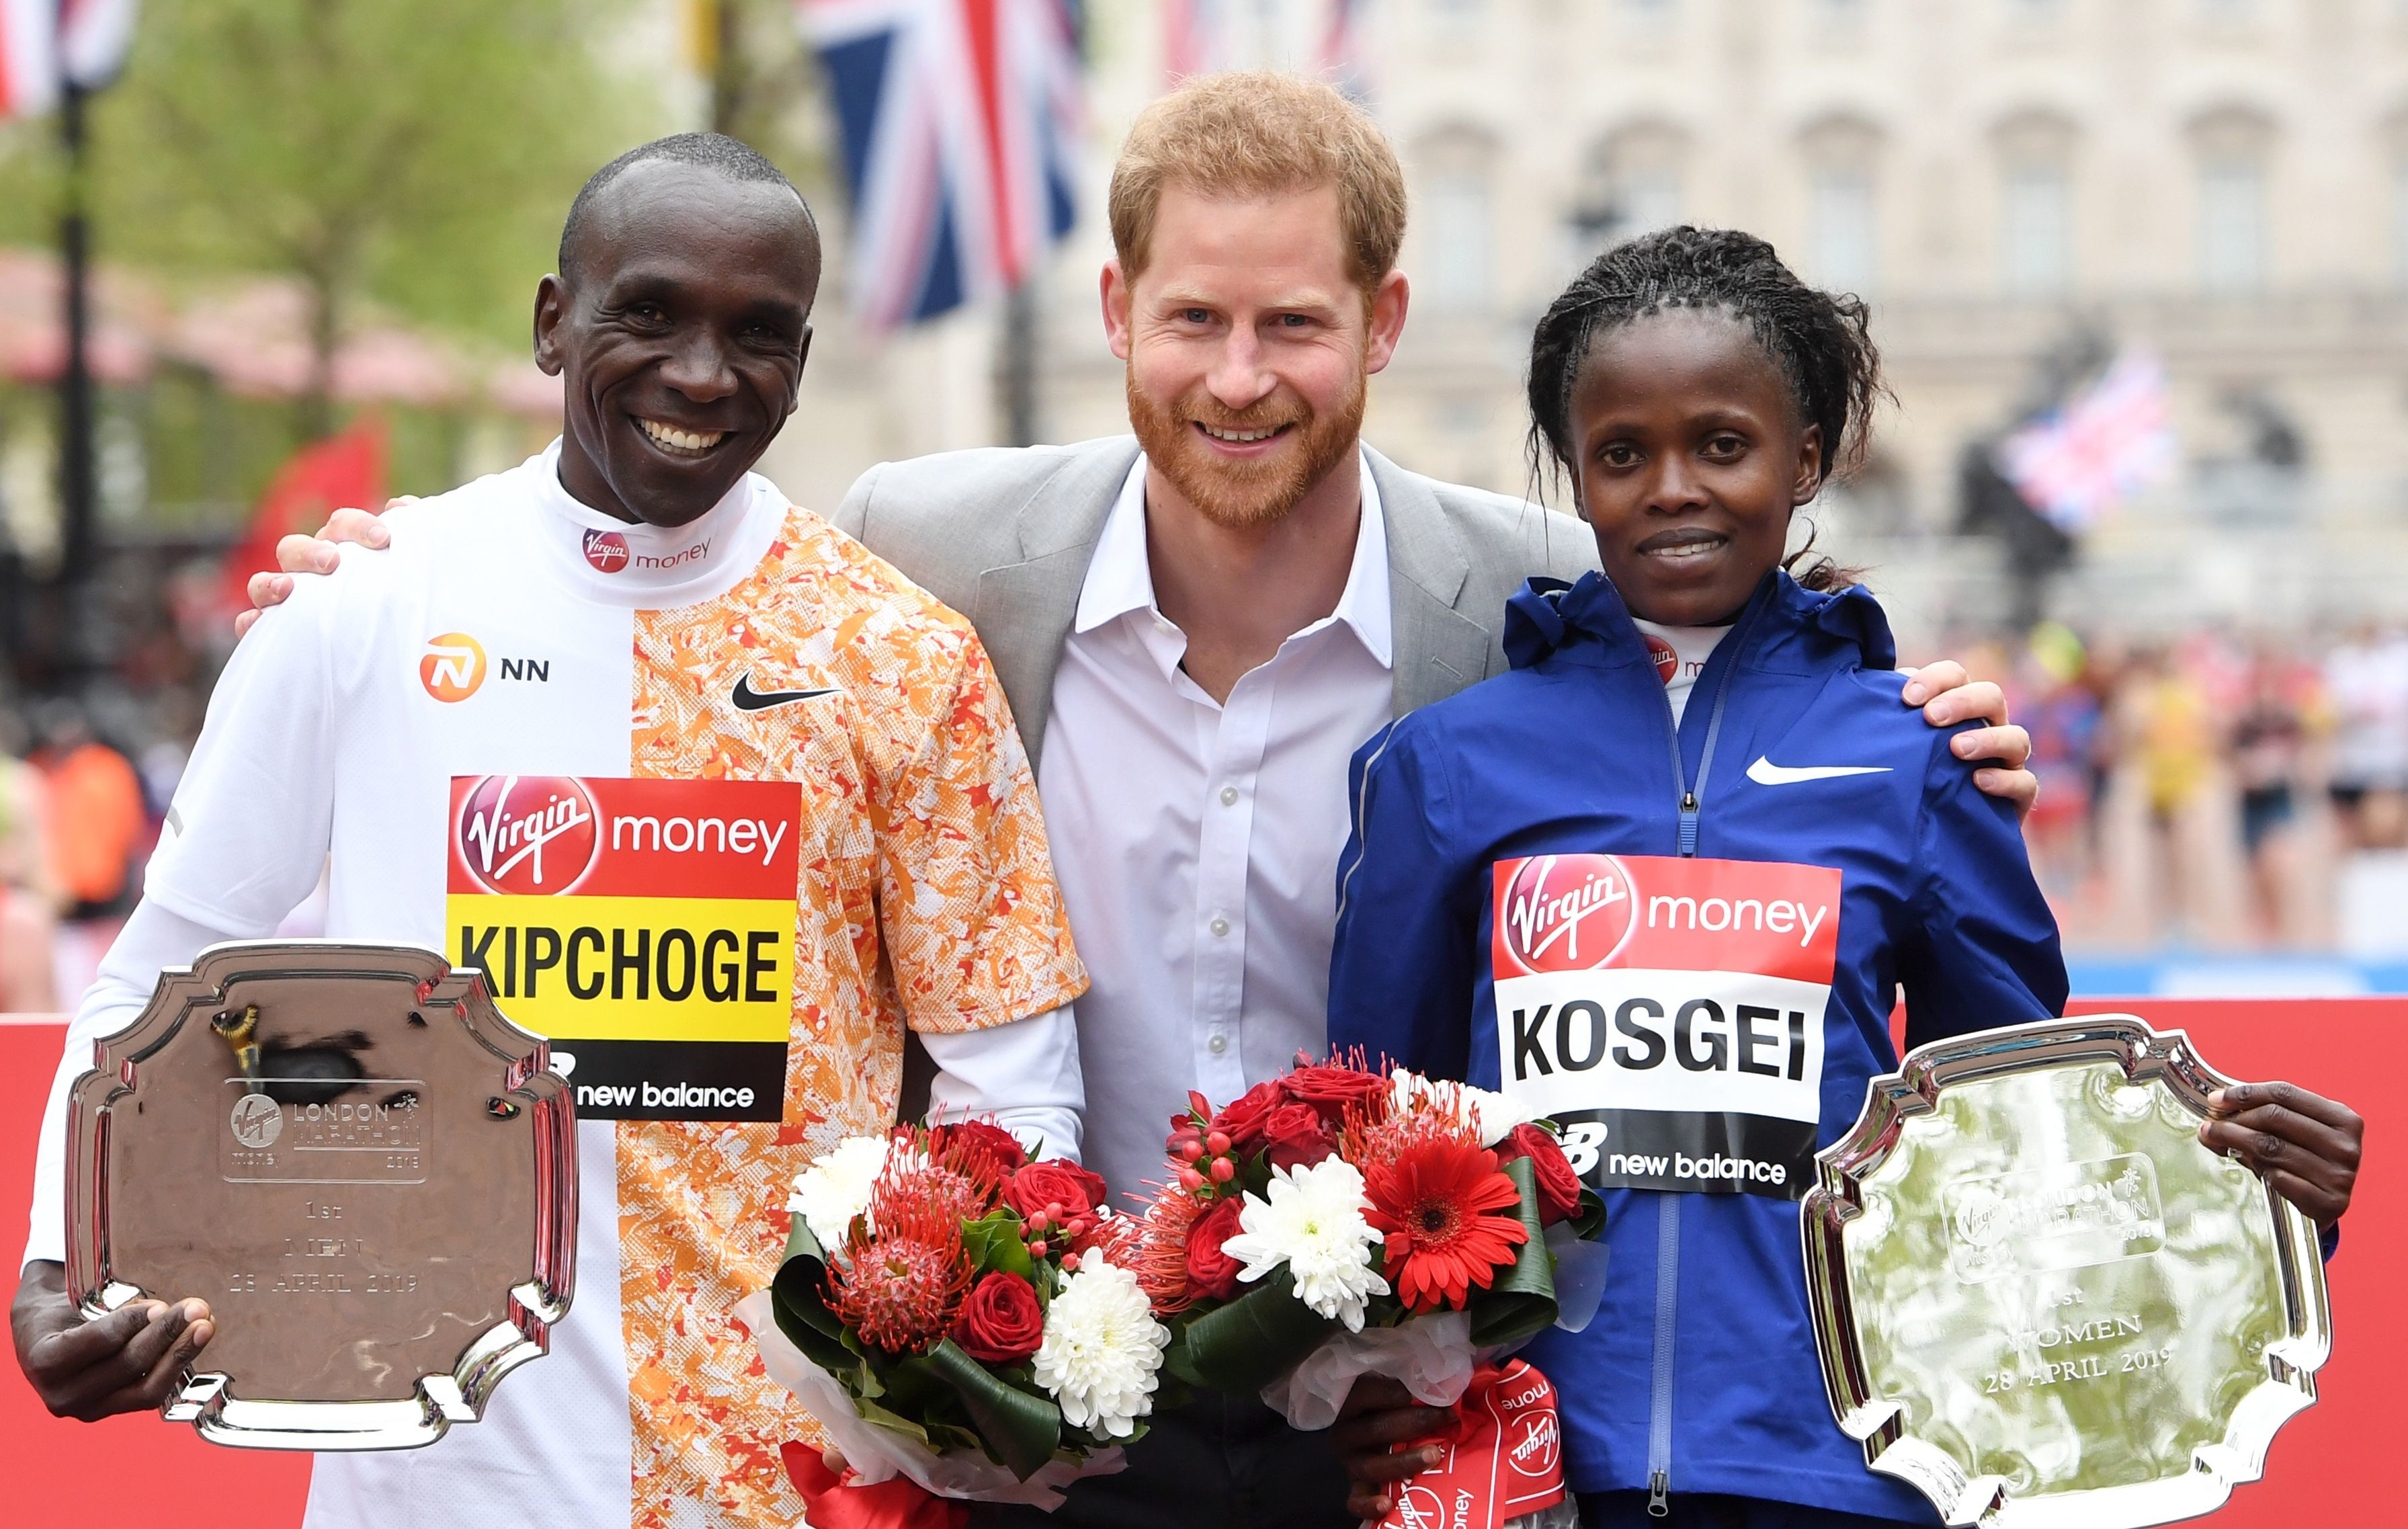 London Marathon winner Brigid Kosgei says she does not know what is next for her at the moment